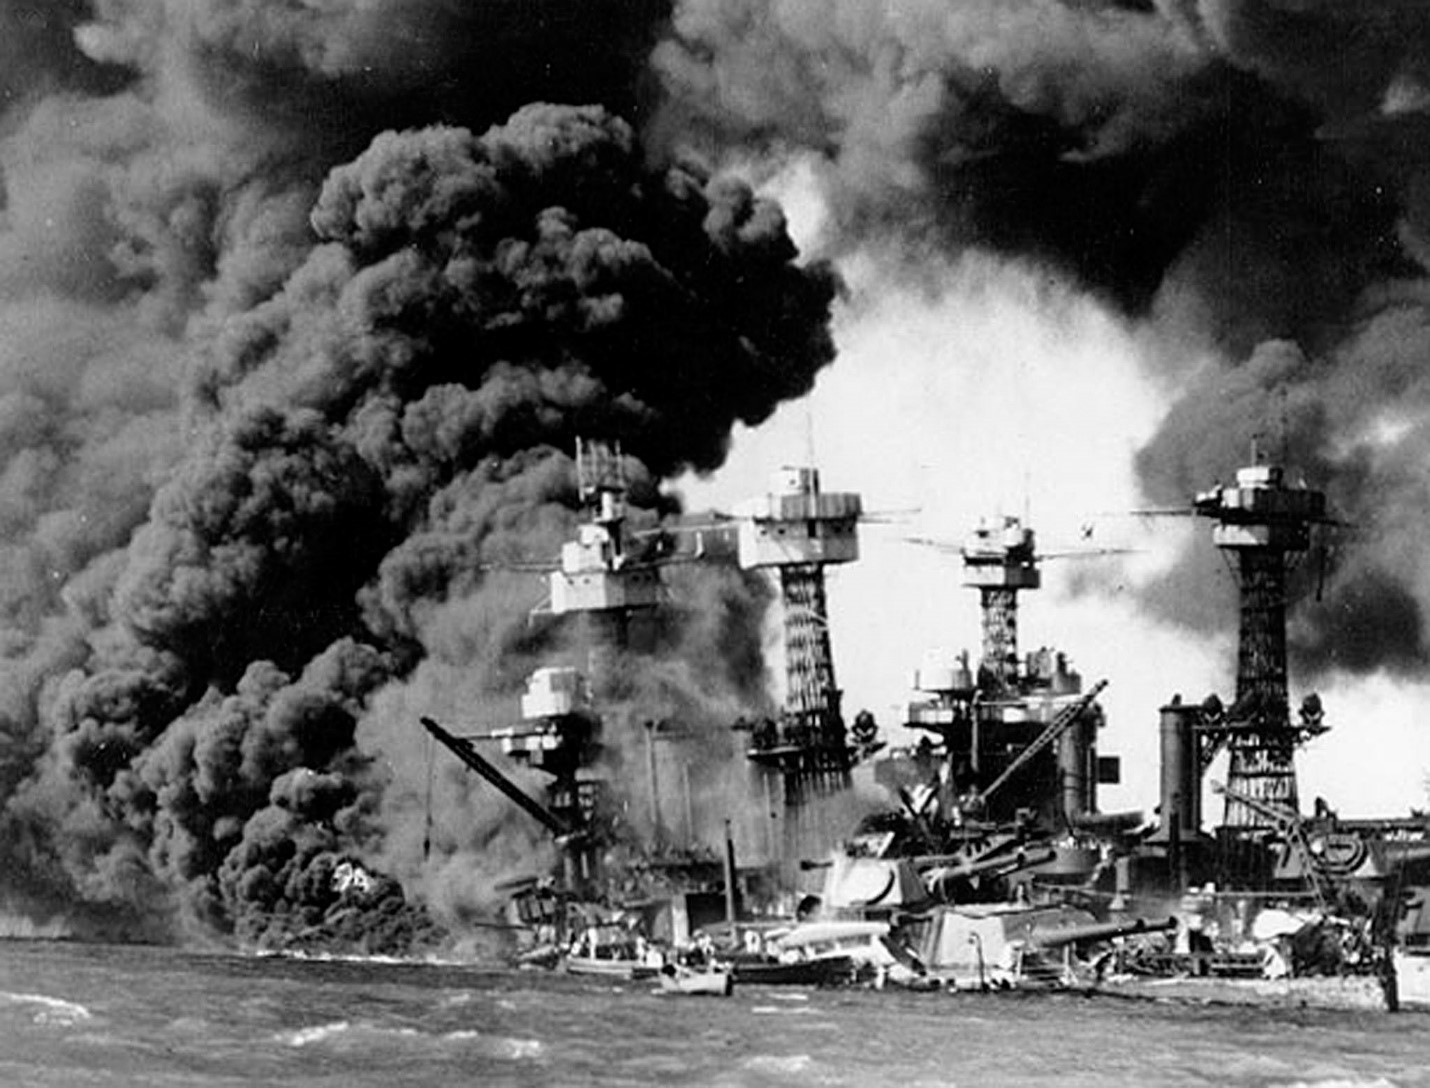 How do you heal a divided America? Bob Bauman discusses how the memory of Pearl Harbor can break through our current disunity.